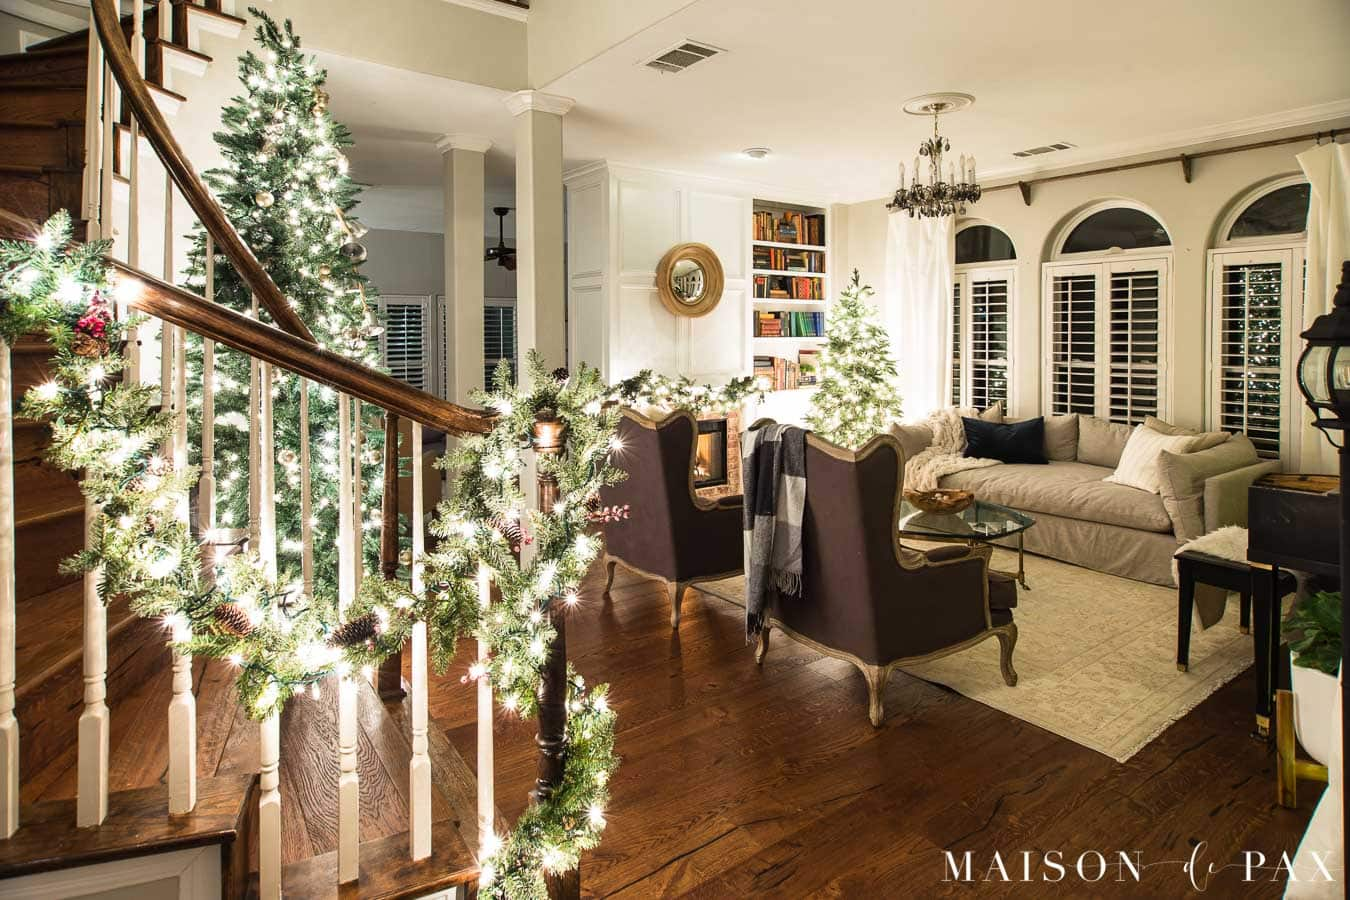 living room and stairwell lit by Christmas lights | Maison de Pax